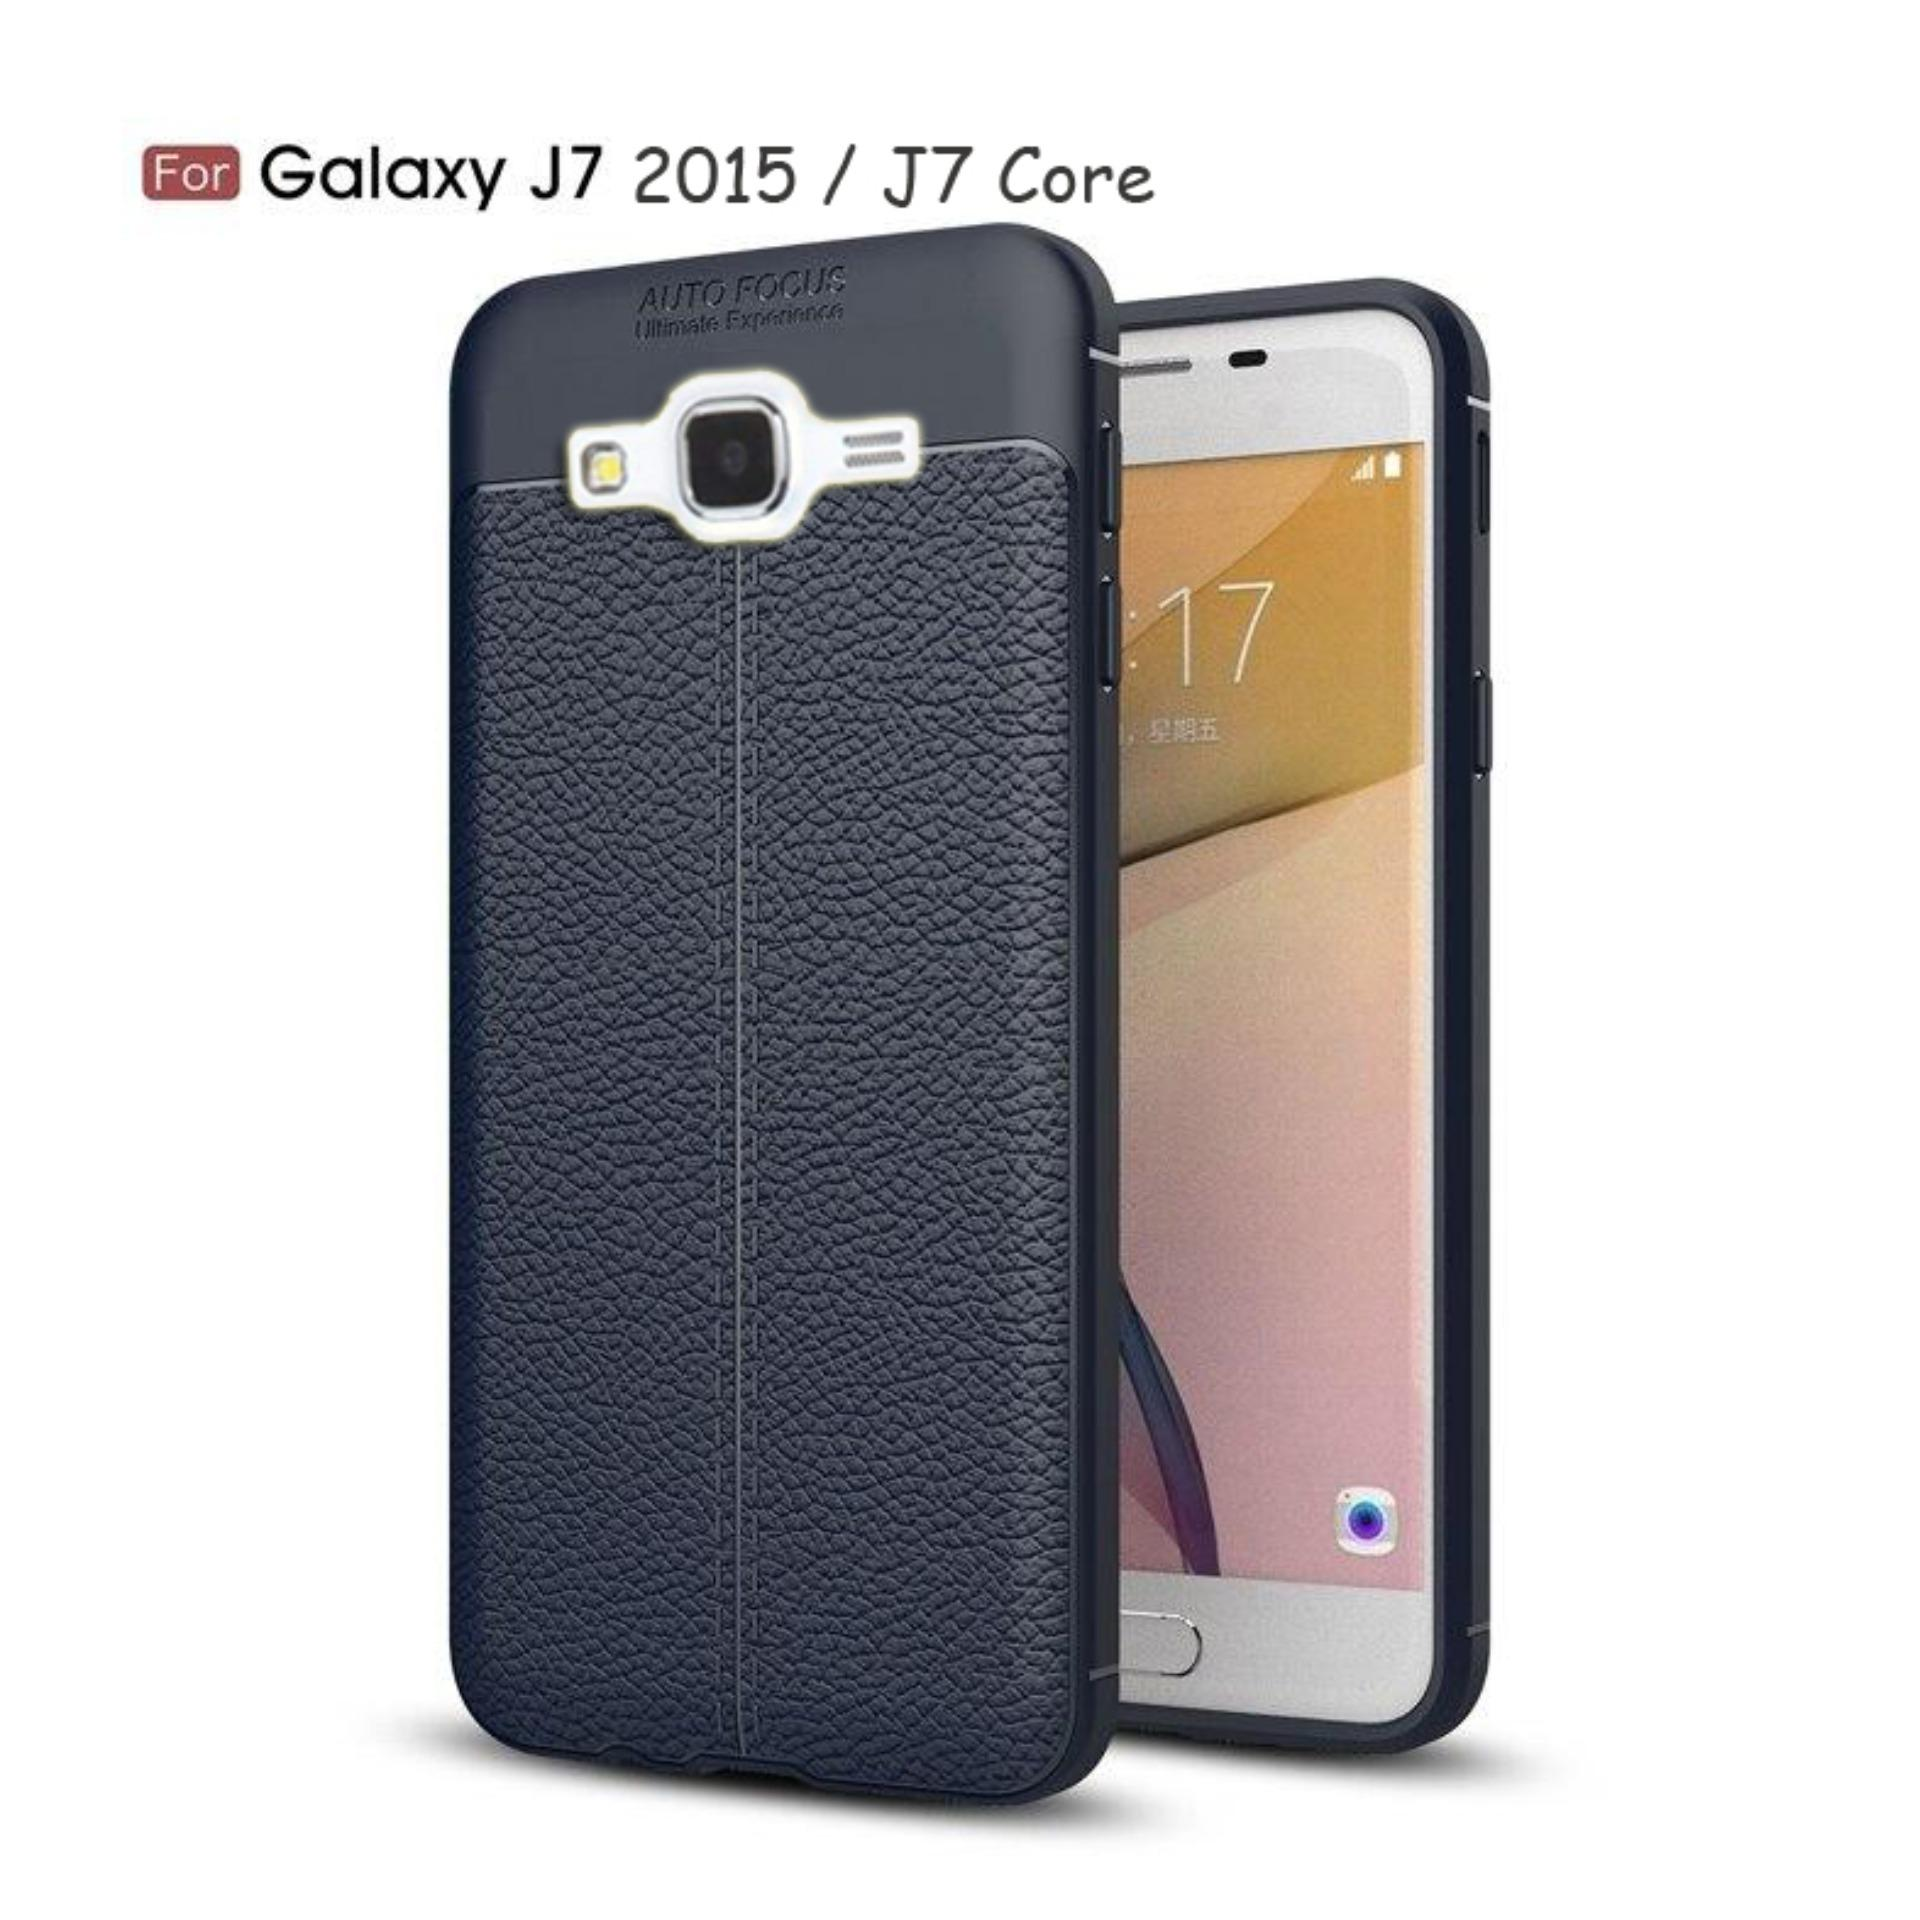 JAK - Softcase Leather / Case Auto Focus / Case Ultimate for Samsung Galaxy J7 2015 / J7 Core ( 5.5